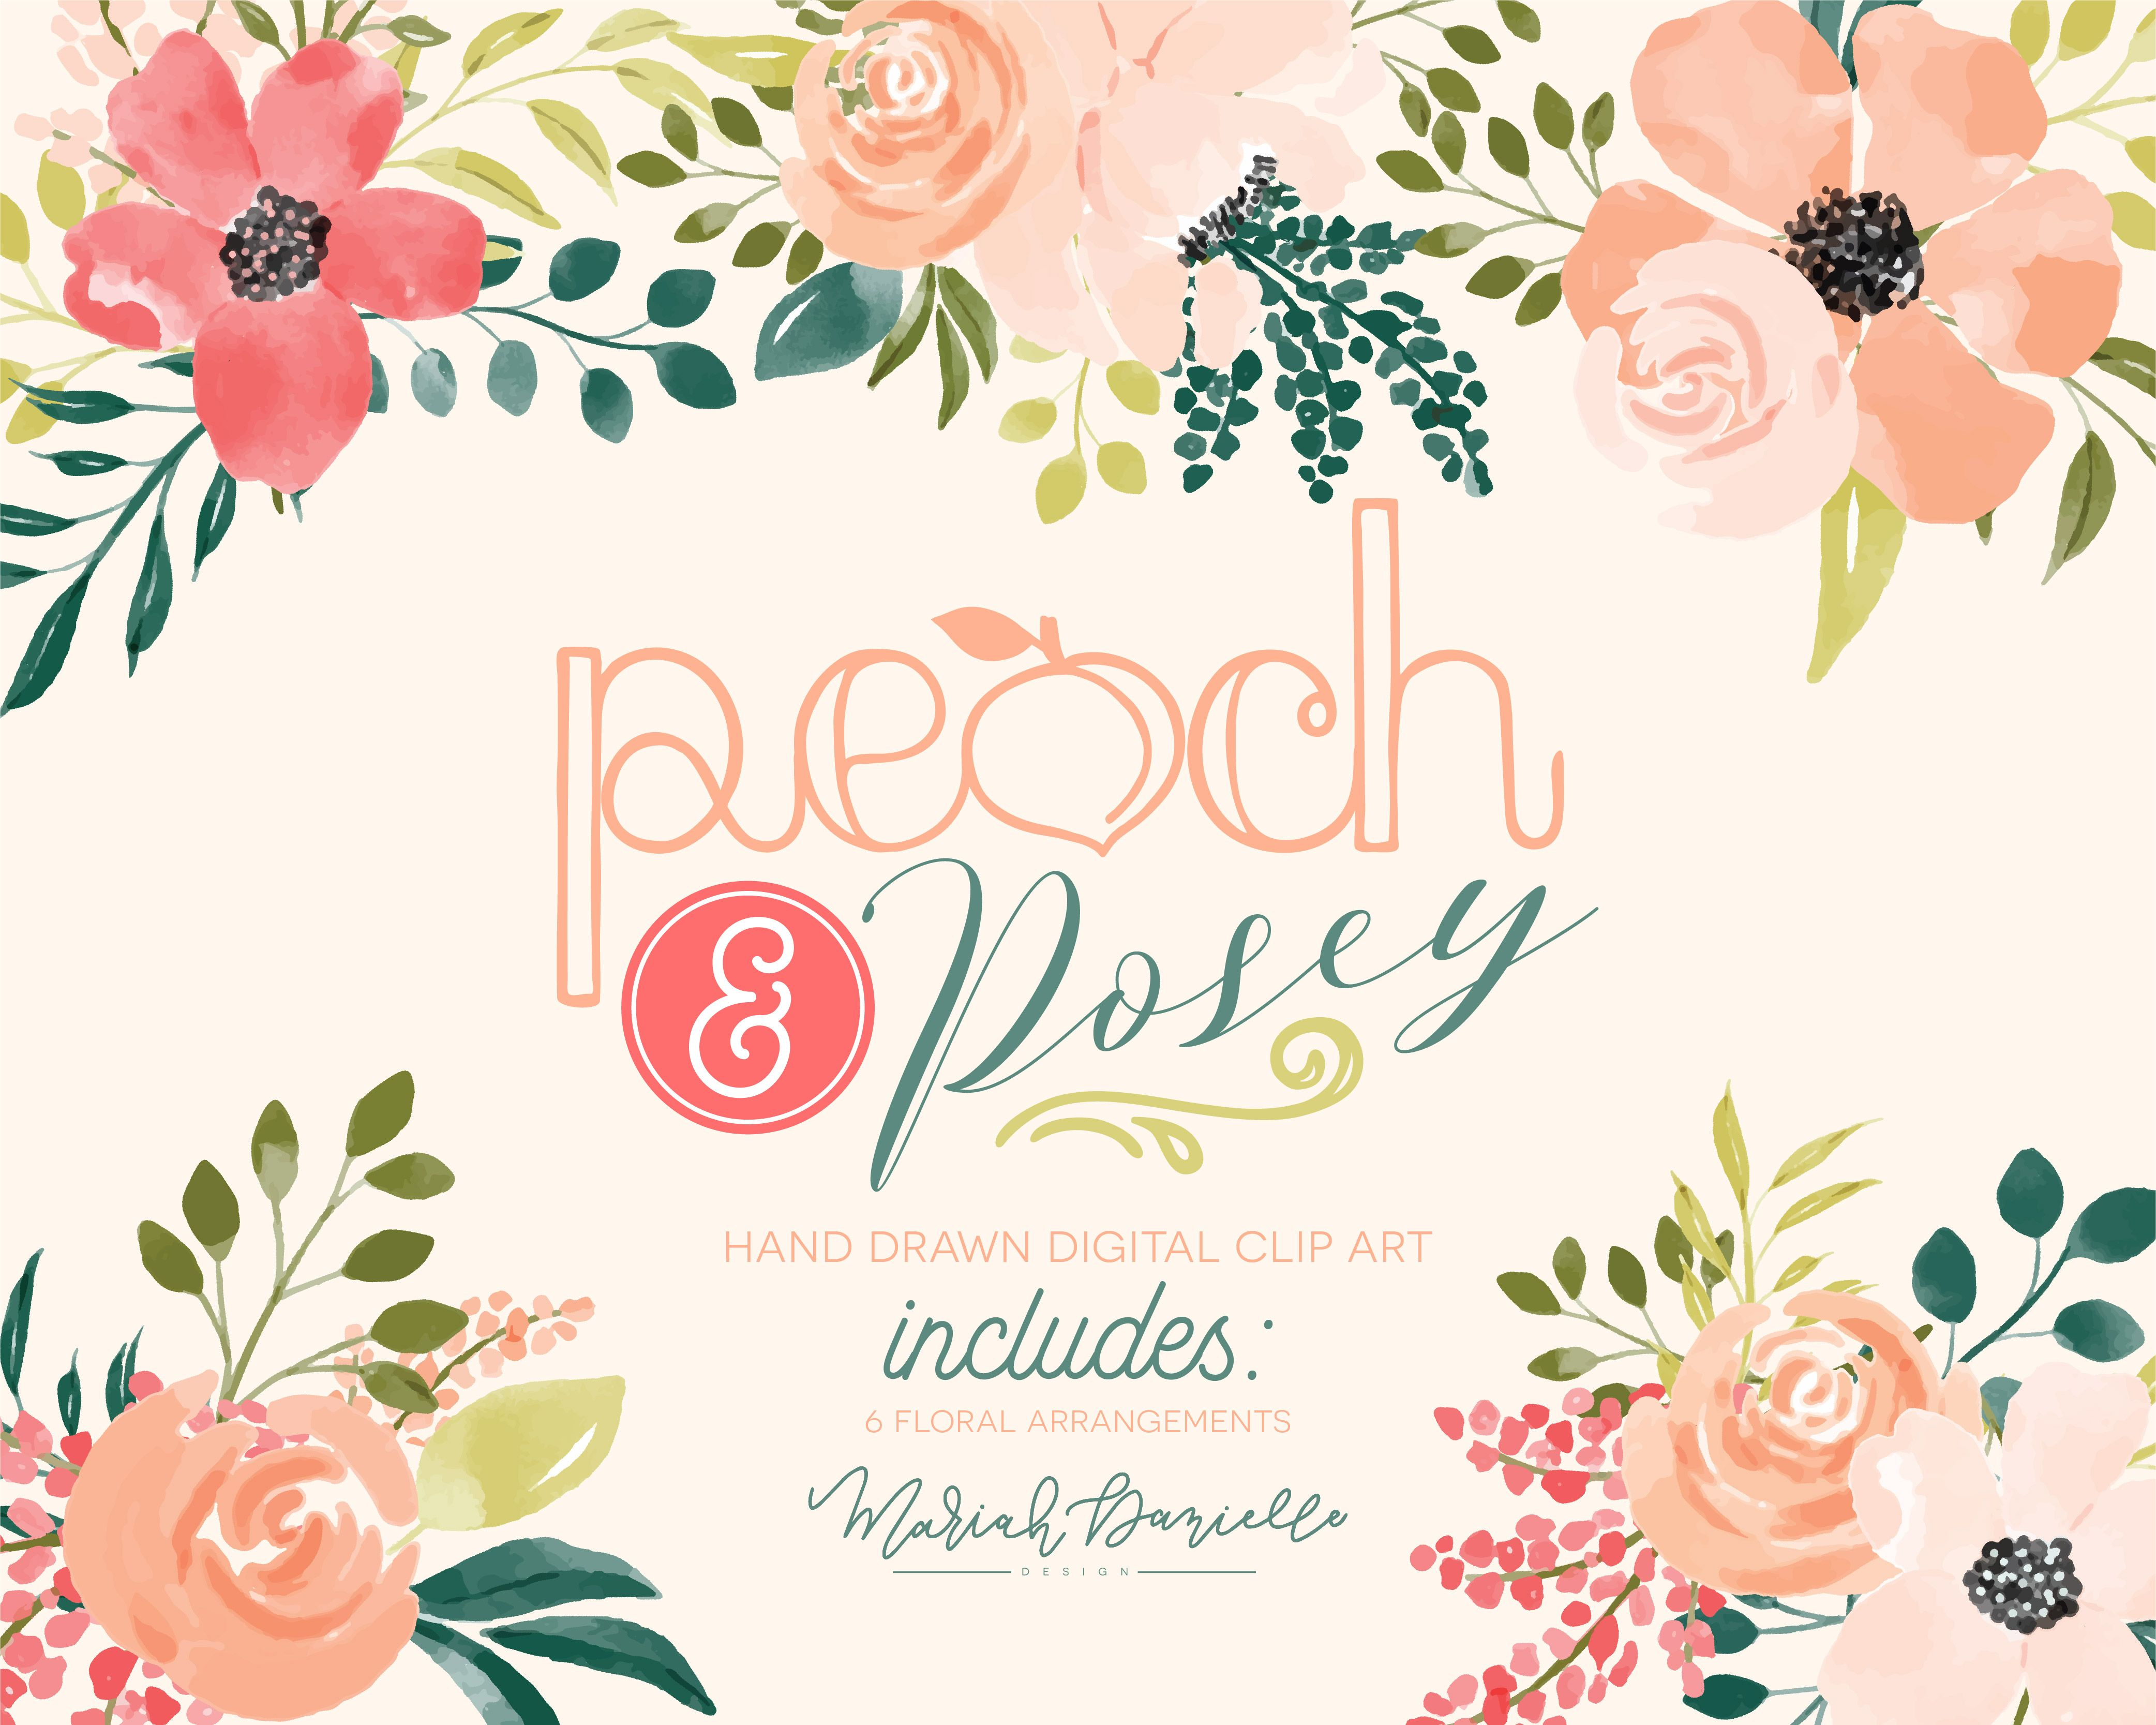 Pink and turquoise wedding bouquet cliparts png library download Peach & Posey Floral Bouquet Set - Illustrations | Hand ... png library download